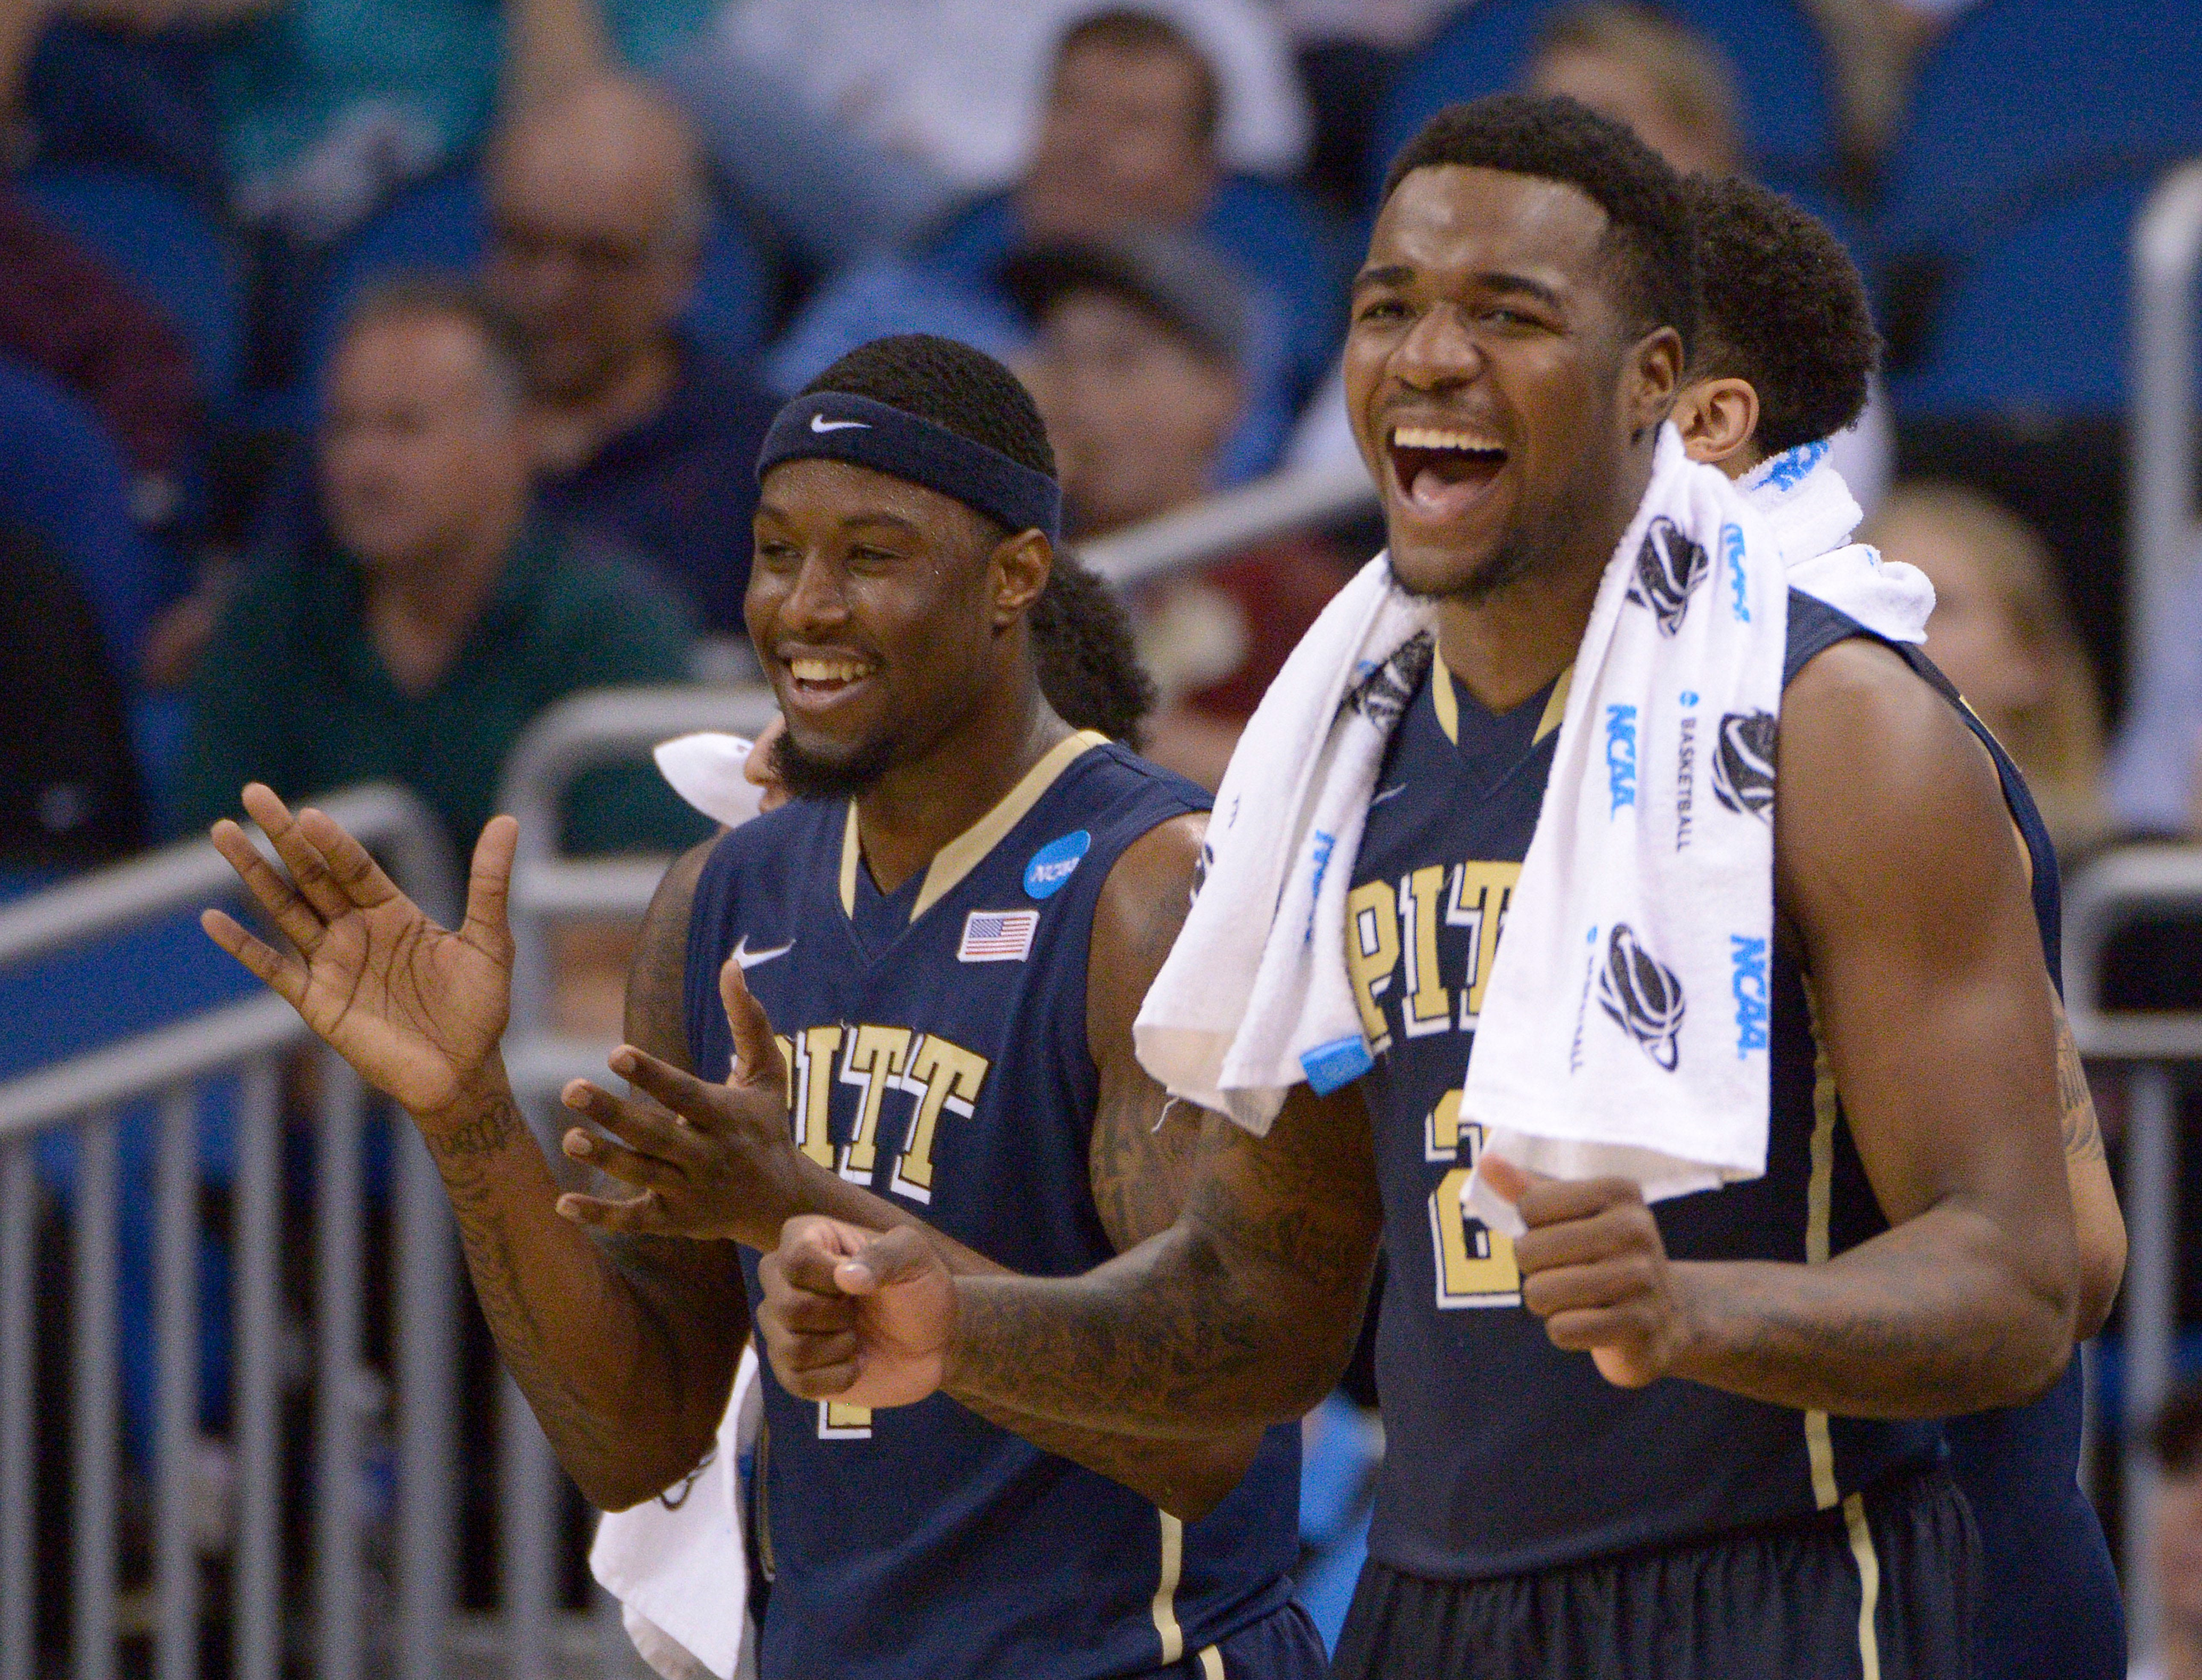 Pitt seniors look to go out on high note